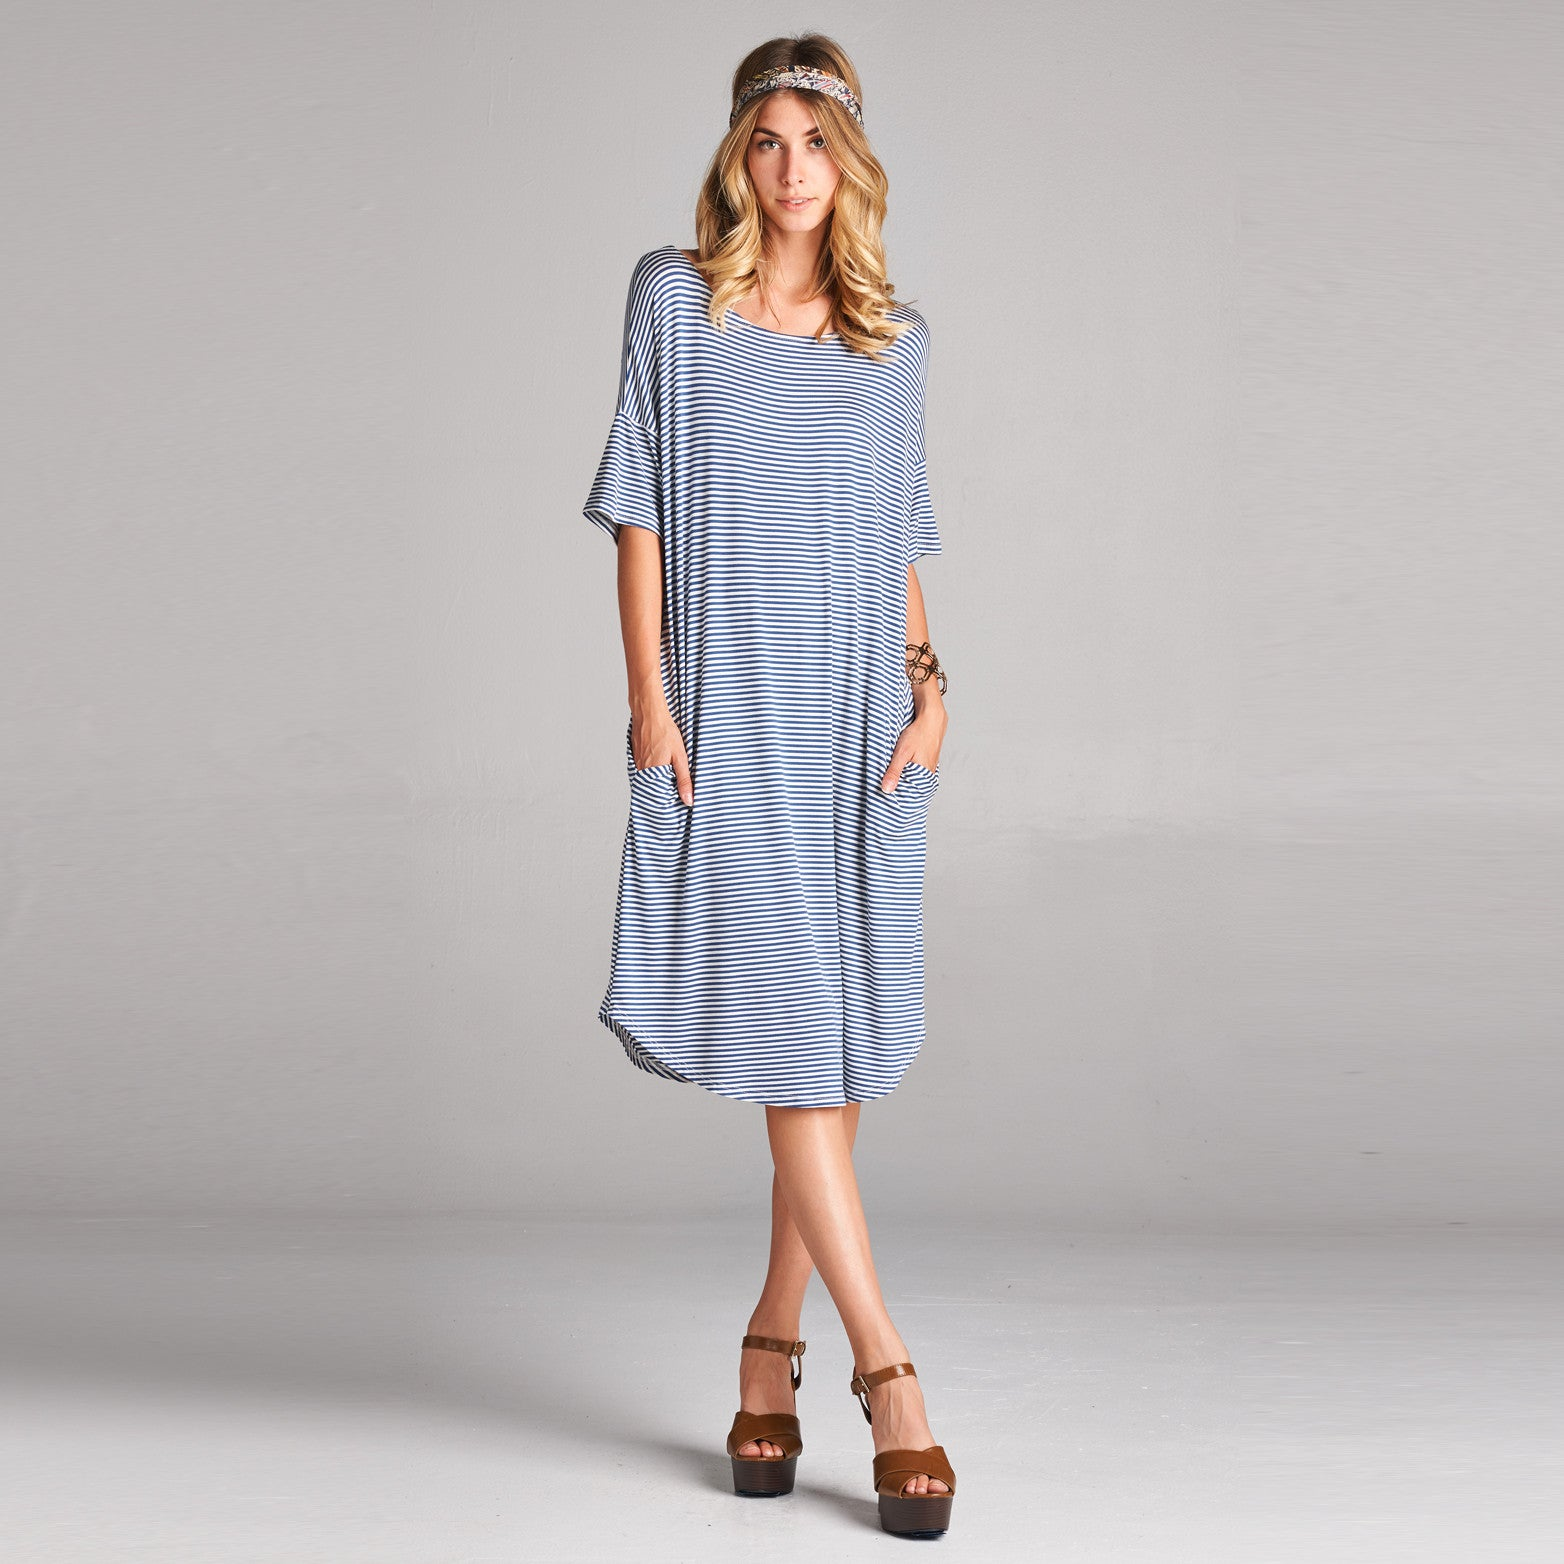 Relaxed Fit Striped Dress with Pockets - Love, Kuza